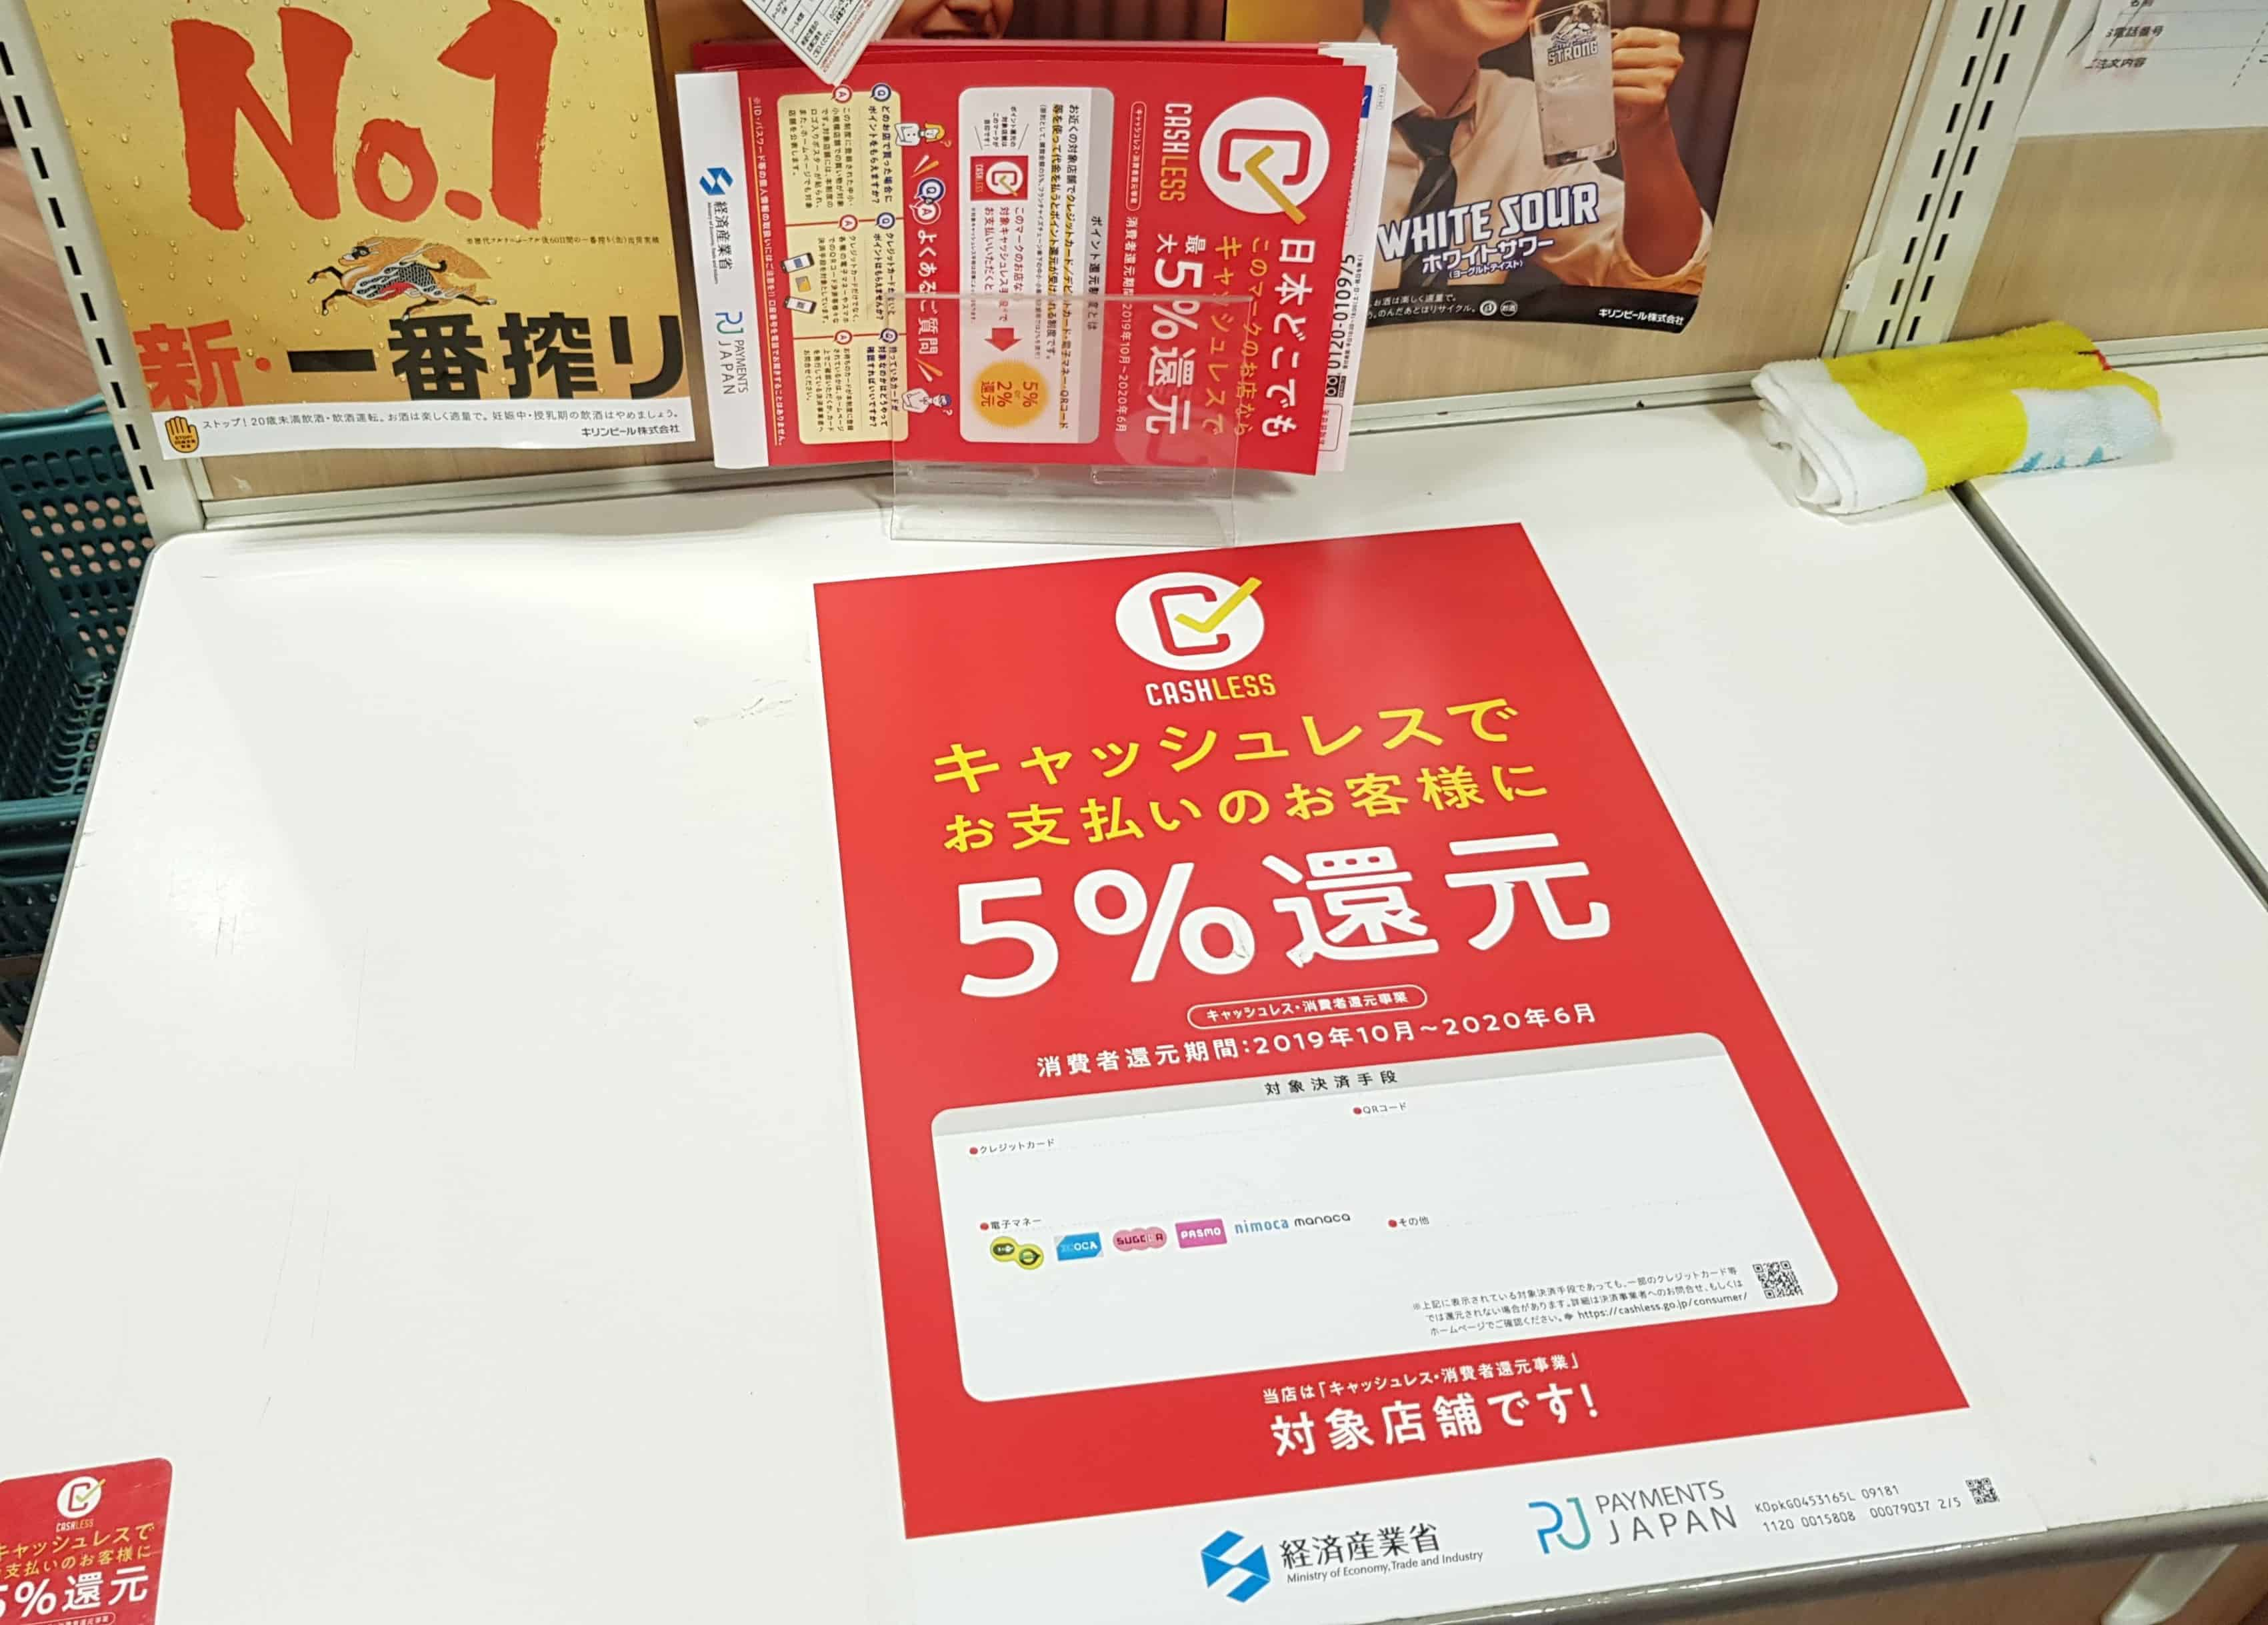 Japan Government is Offering Tax Discounts Up to 5% for Cash Payments